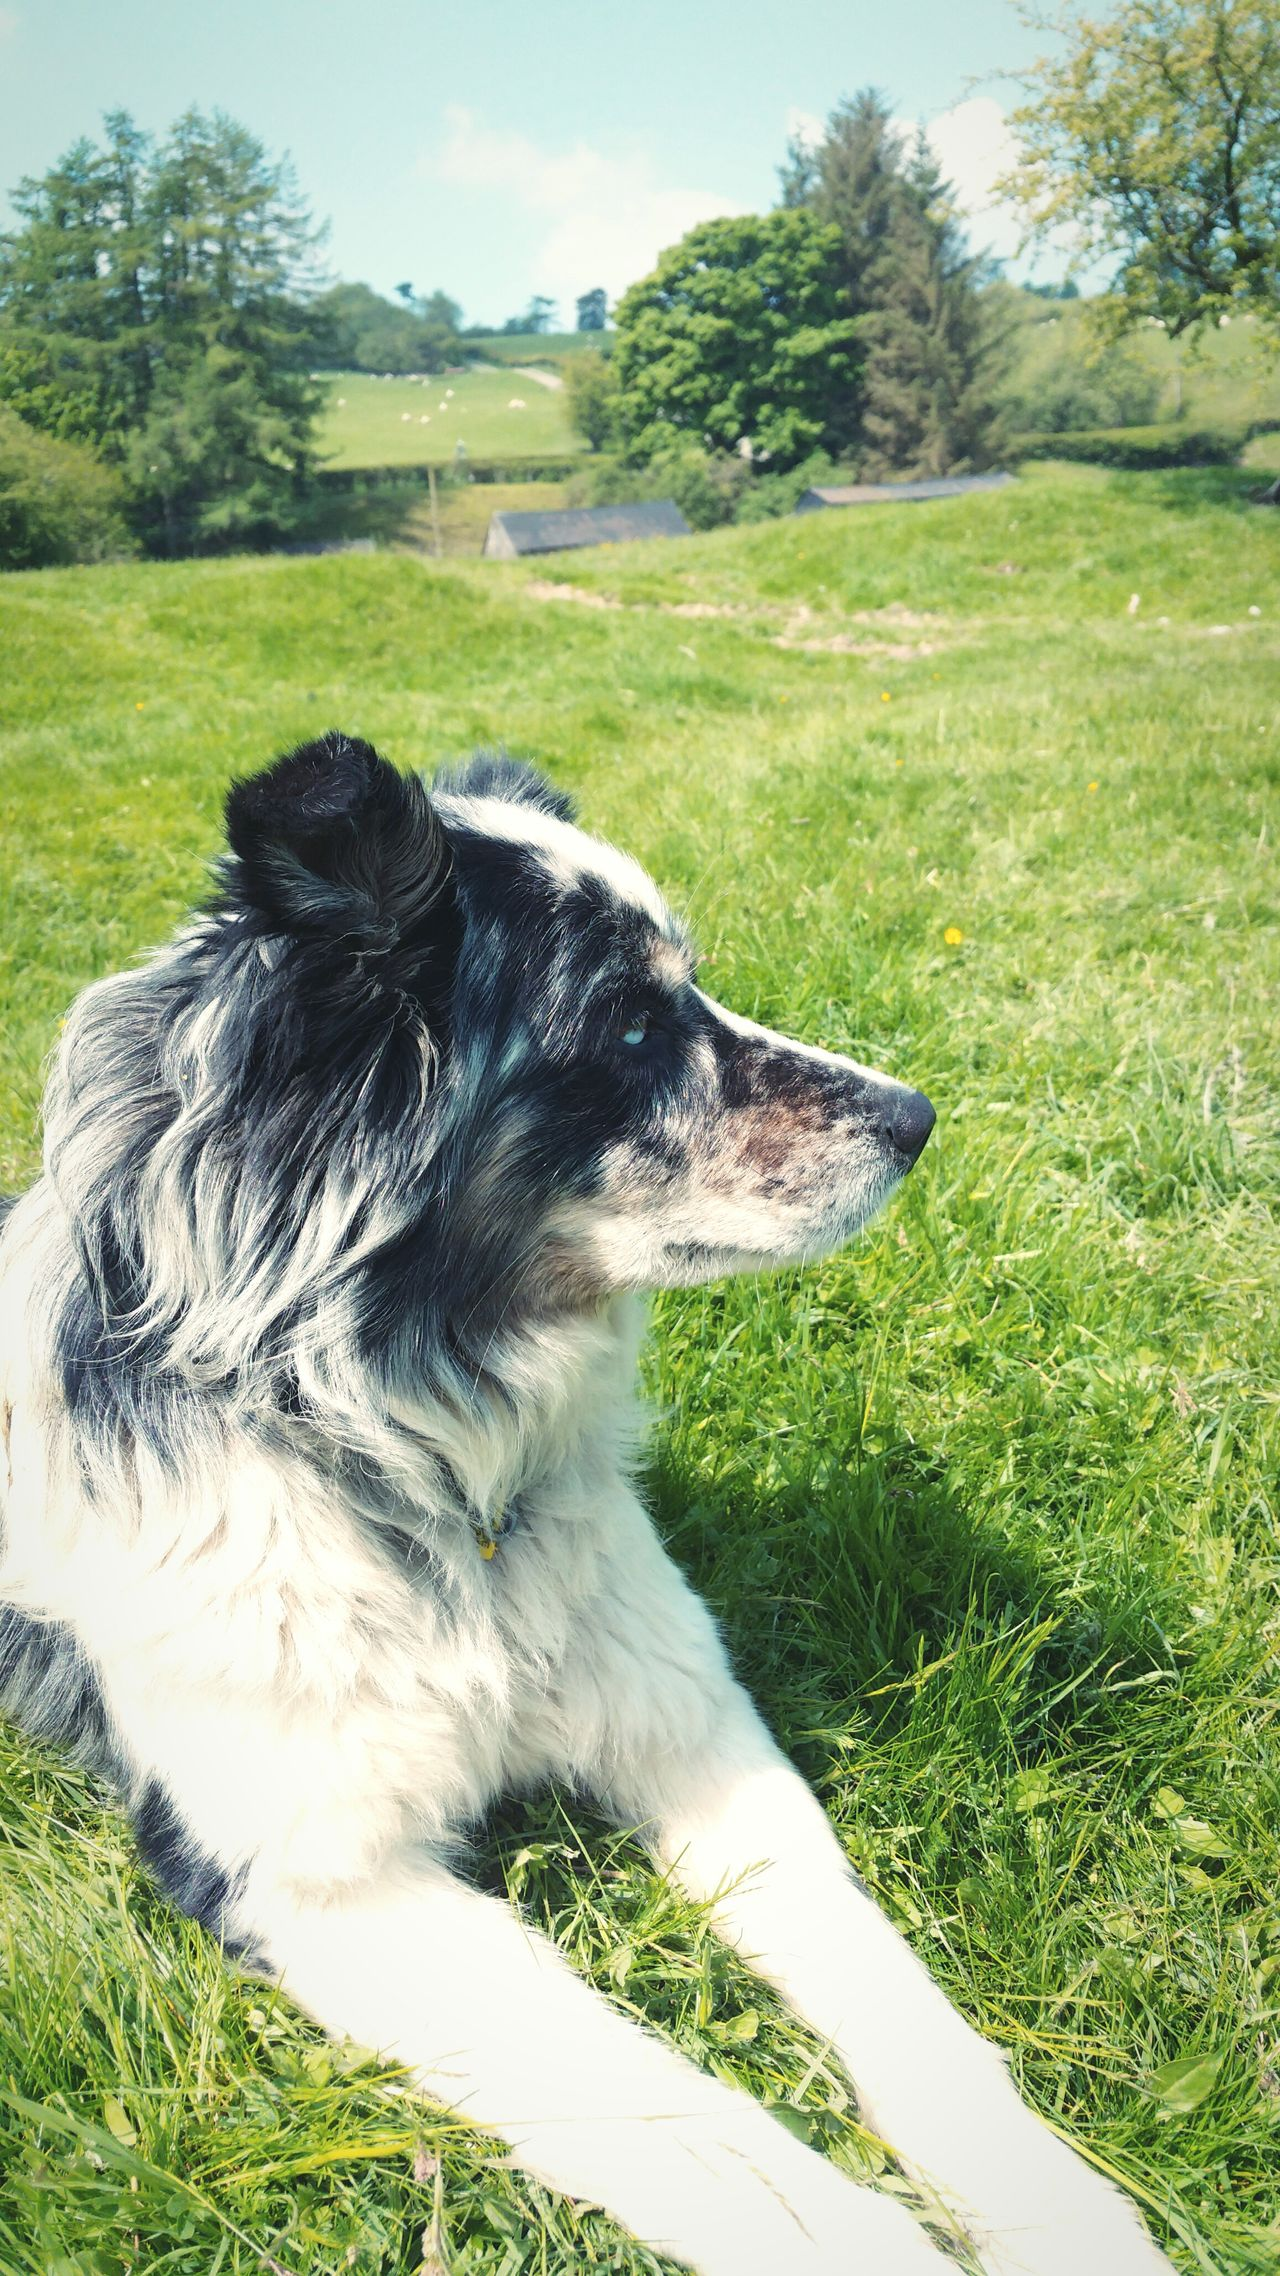 ... Tom the Sheepdog ... собака овчарка Farmland Farm Wales Animals Field Pasture Outdoors Dog Mammal Domestic Animals One Animal Grass Animal Themes Merle Blue Merle Dogs Blue Eyed Dog Border Collie бордер колли пес собаки